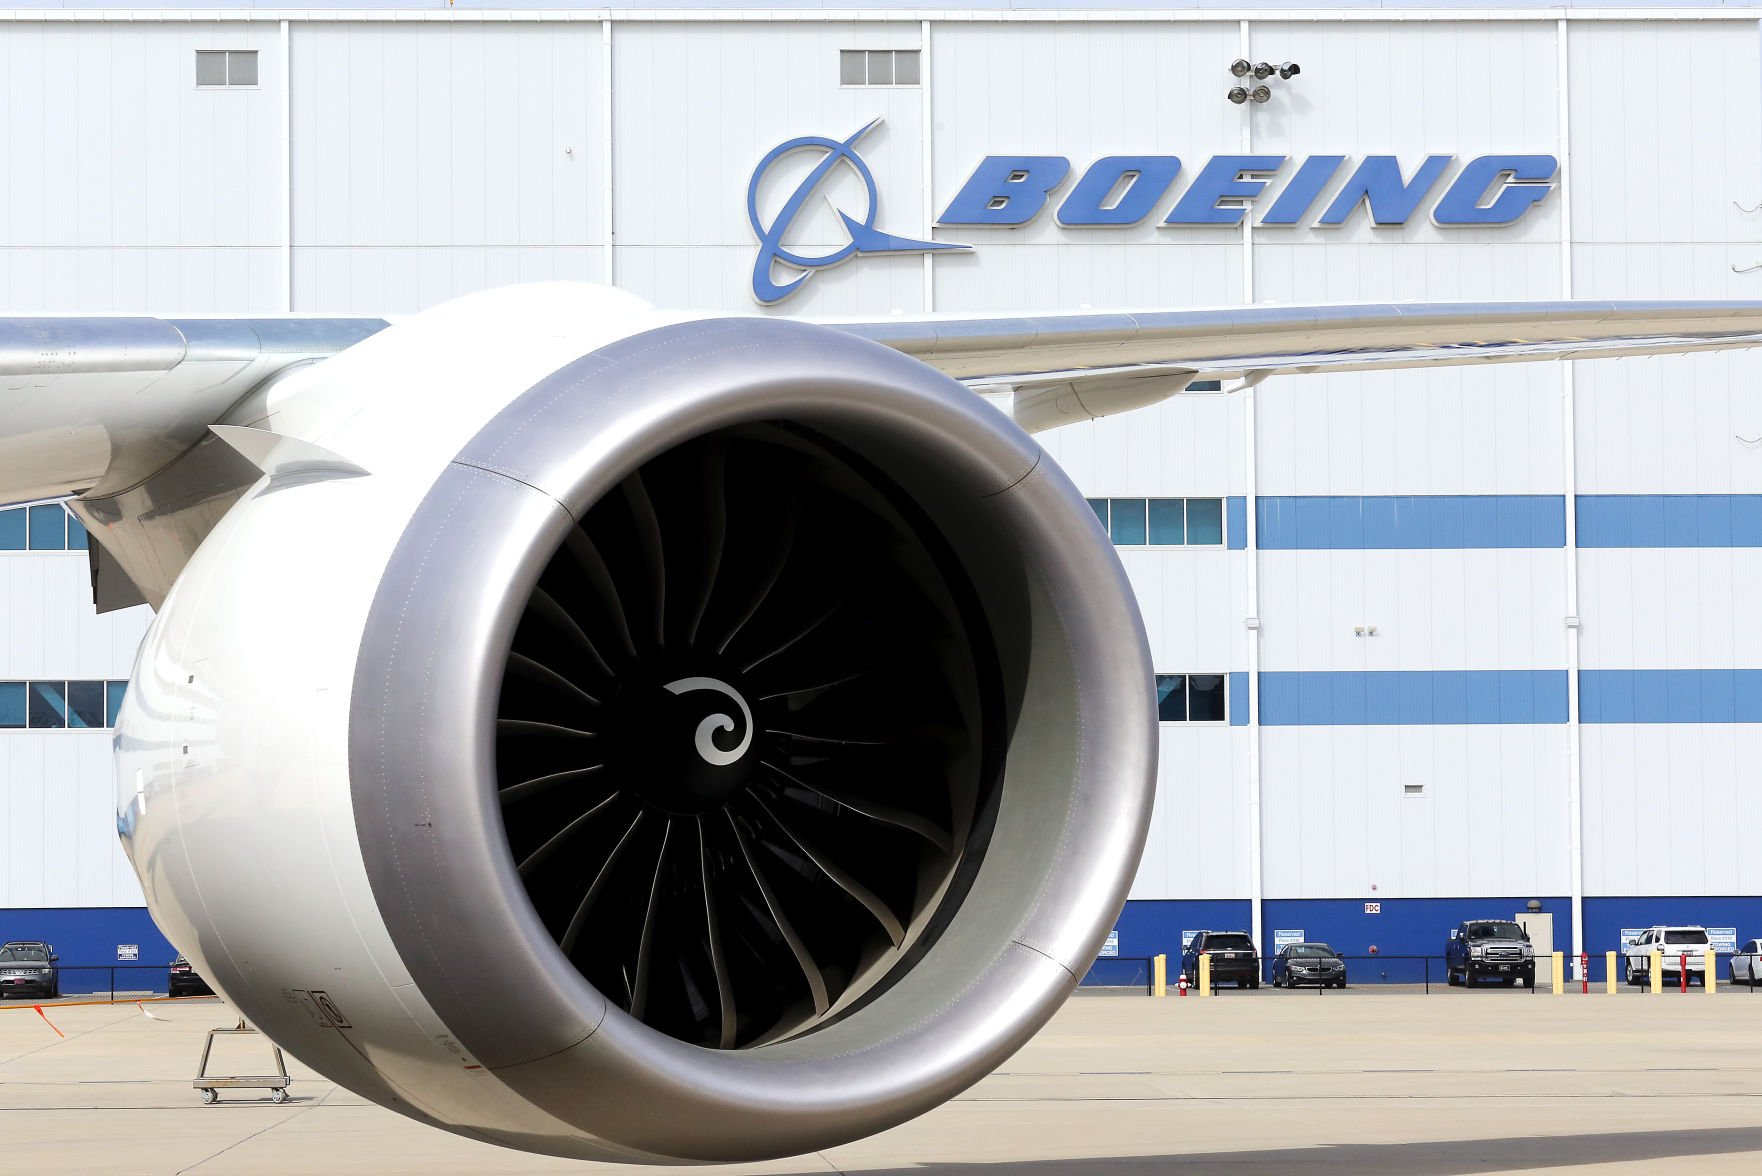 Boeing Company (The) (BA) Releases FY17 Earnings Guidance